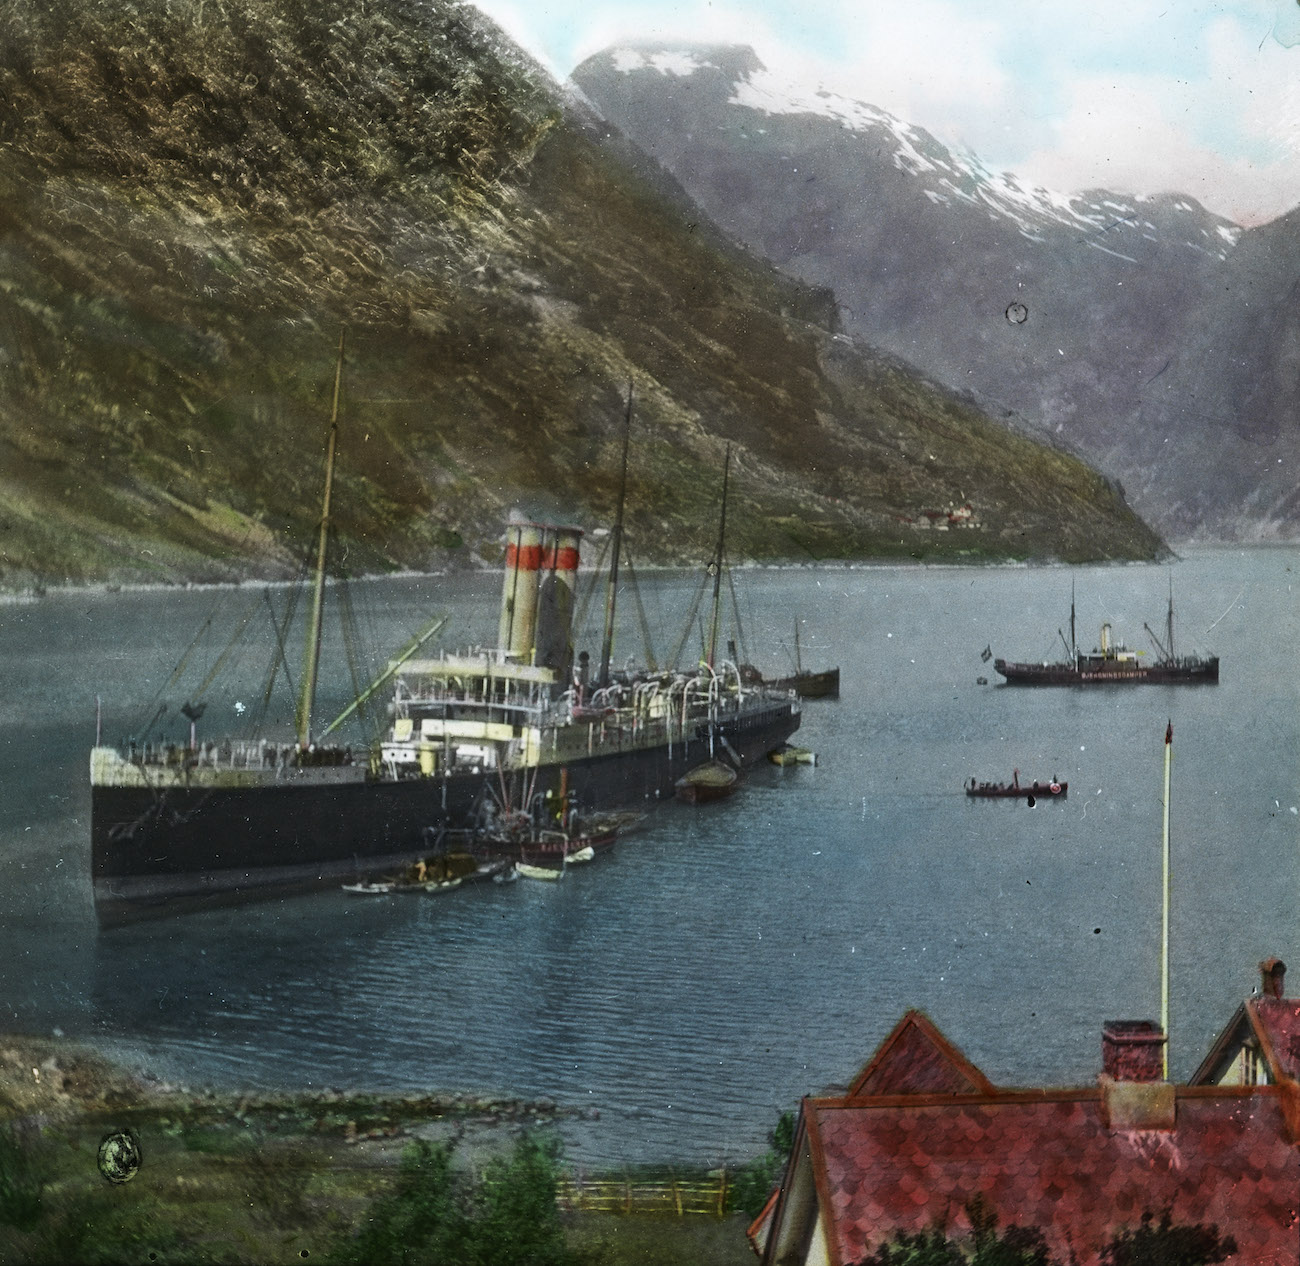 Lantern slides 19th century - the fjords of Norway